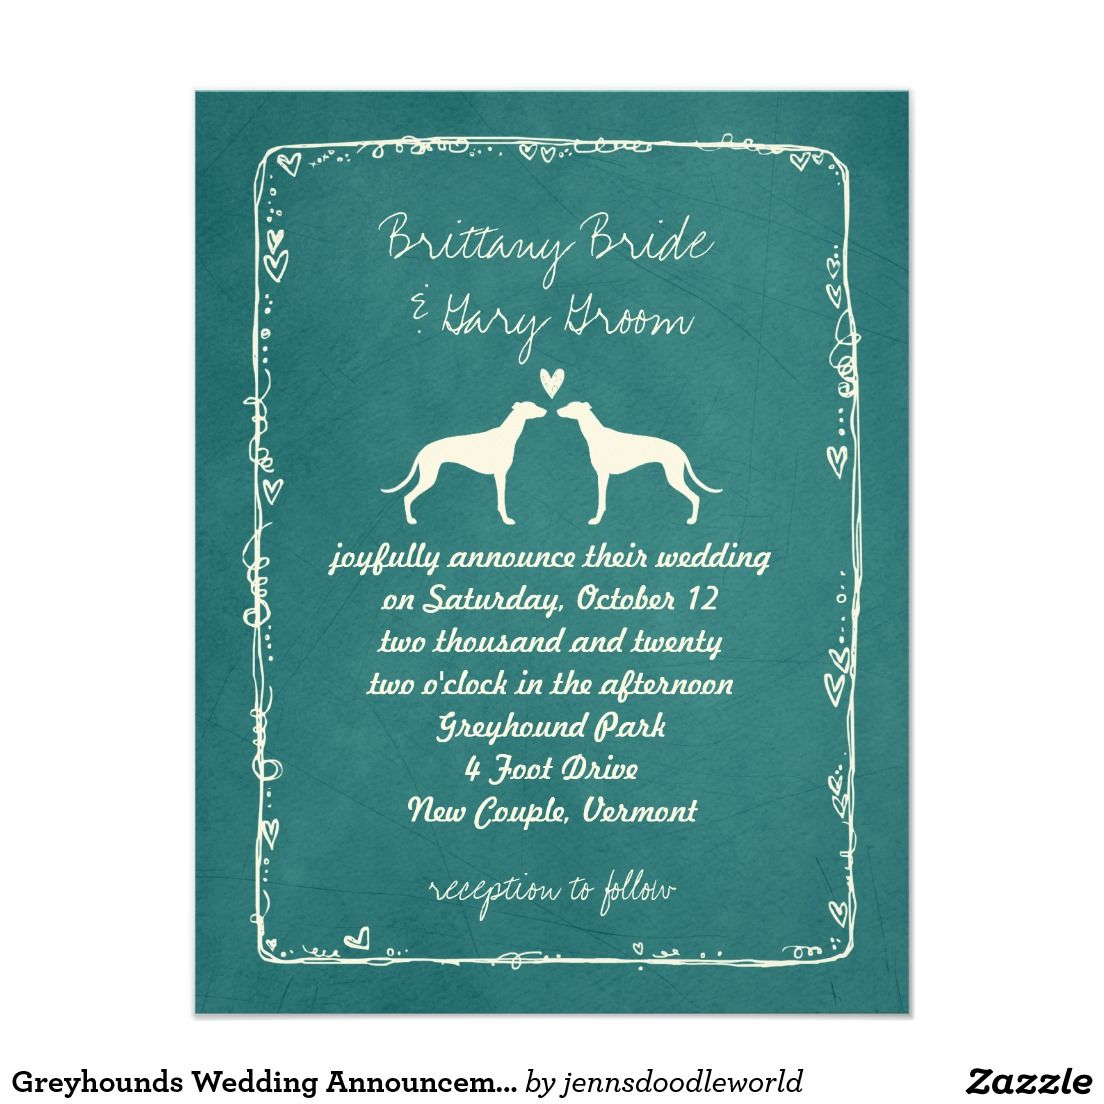 Greyhounds wedding announcement invitations wedding greyhounds wedding announcement monicamarmolfo Image collections